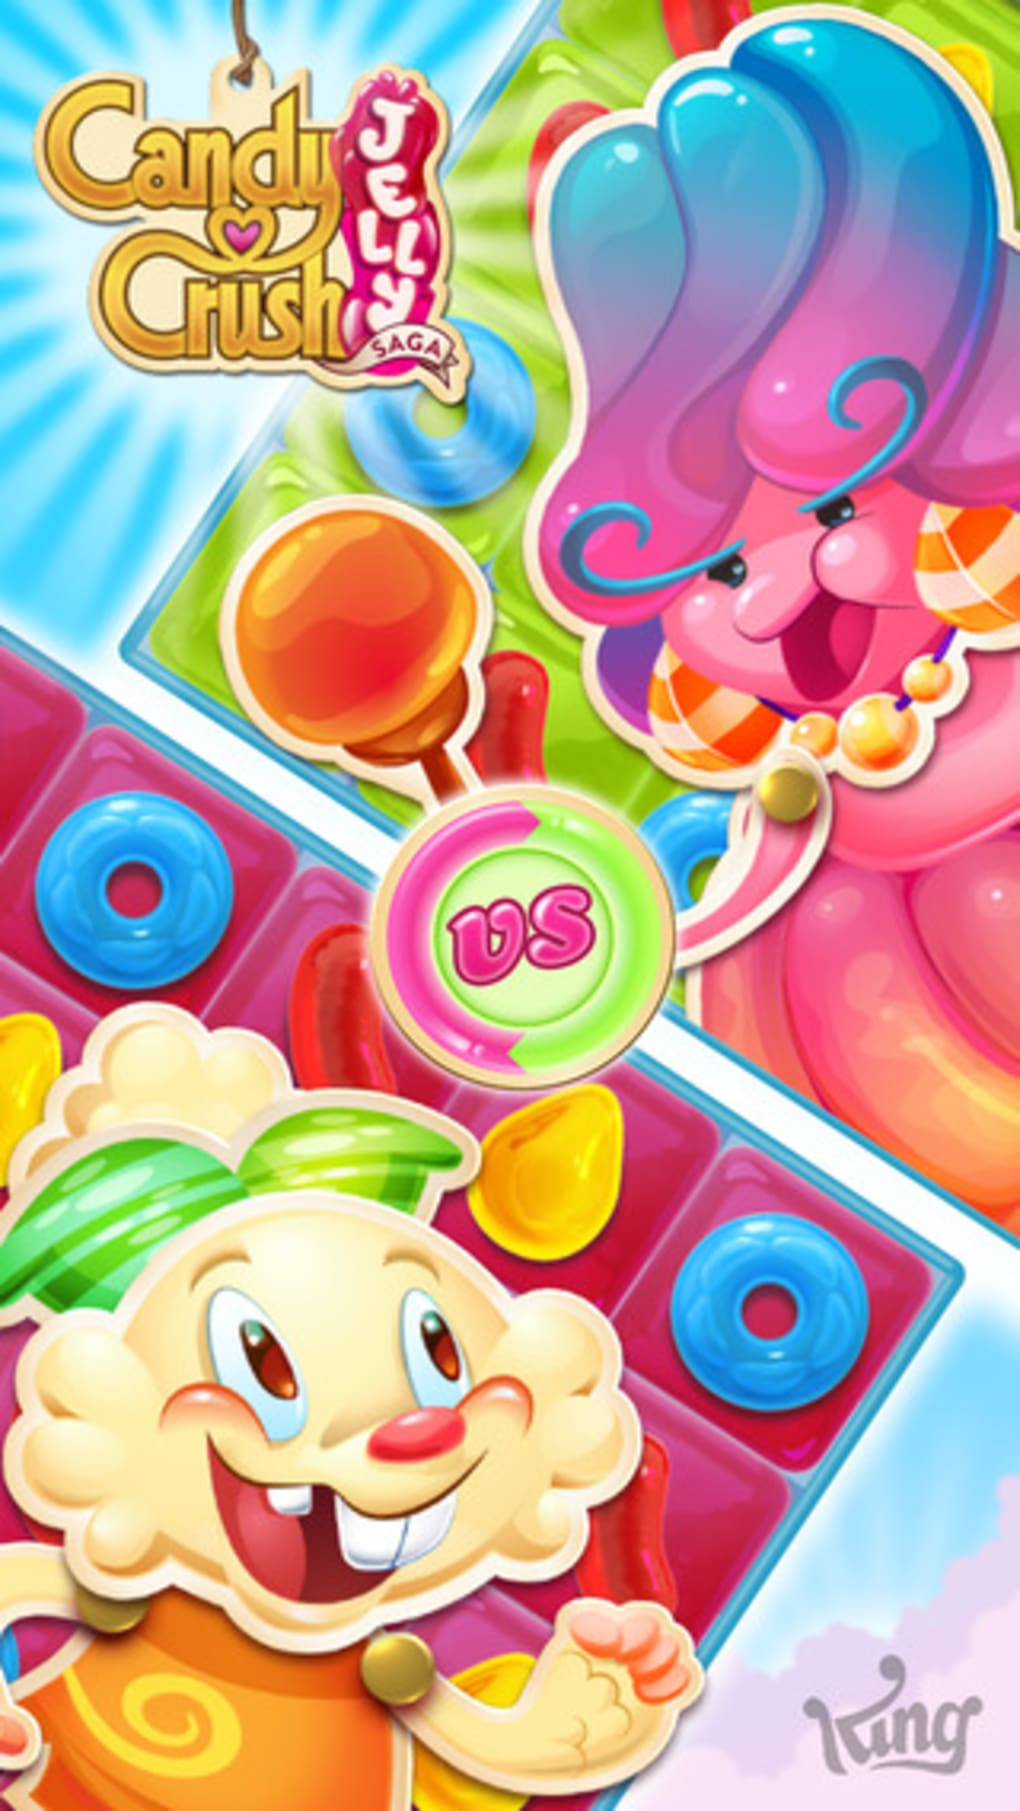 Jelly Crush Saga